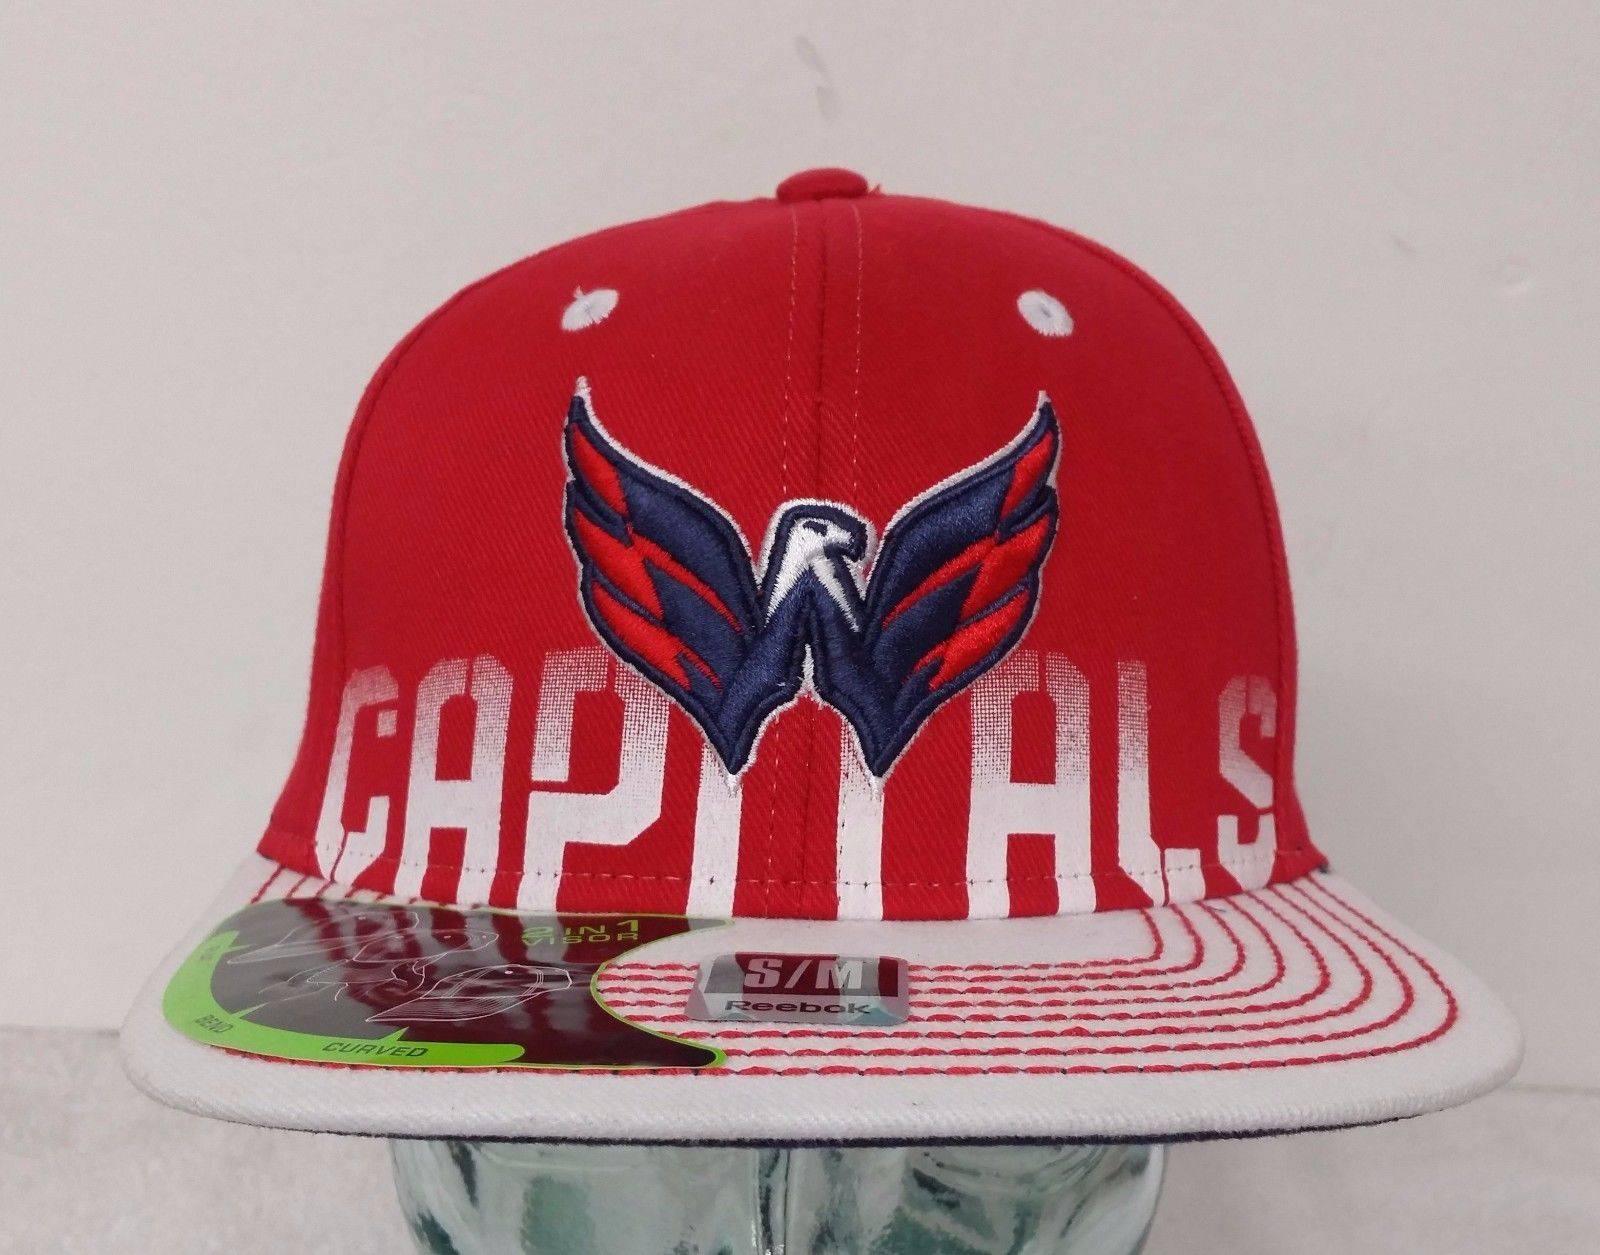 Washington Capitals 2 in 1 Visor Red   White and 50 similar items c3612c2161c